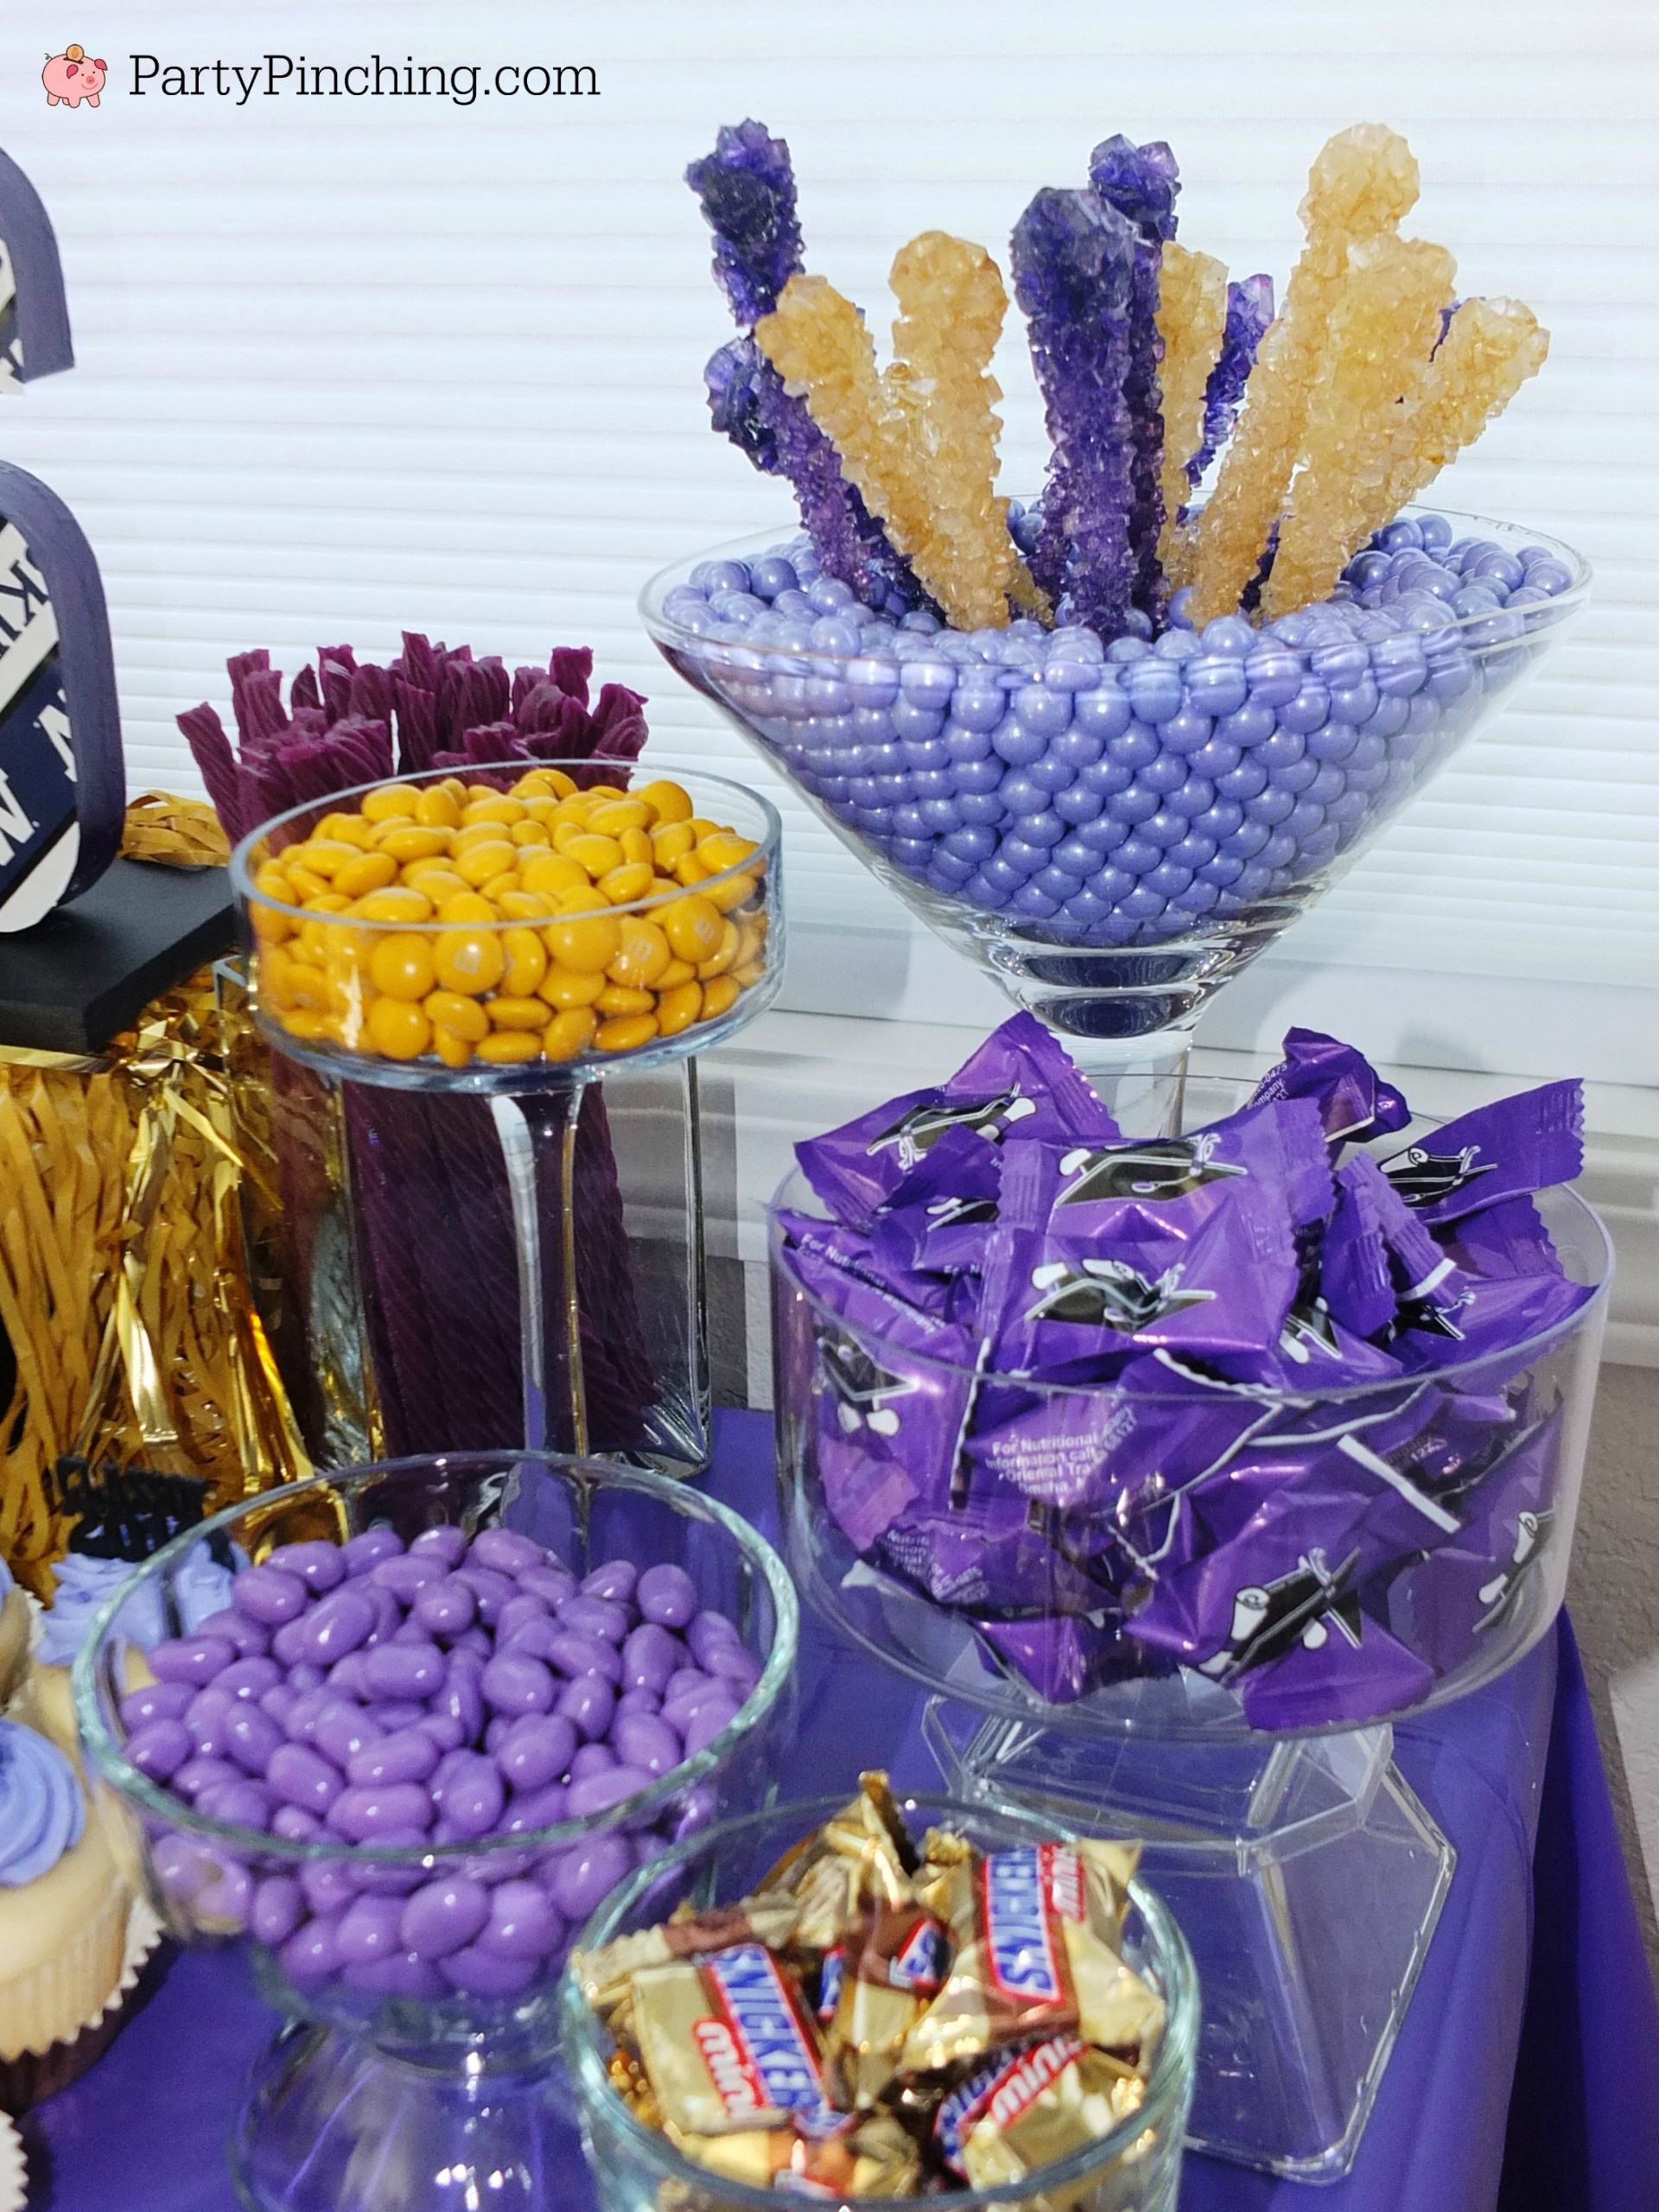 Table Decorations For Graduation Party Ideas  College Graduation Party Graduation Party Ideas 2020